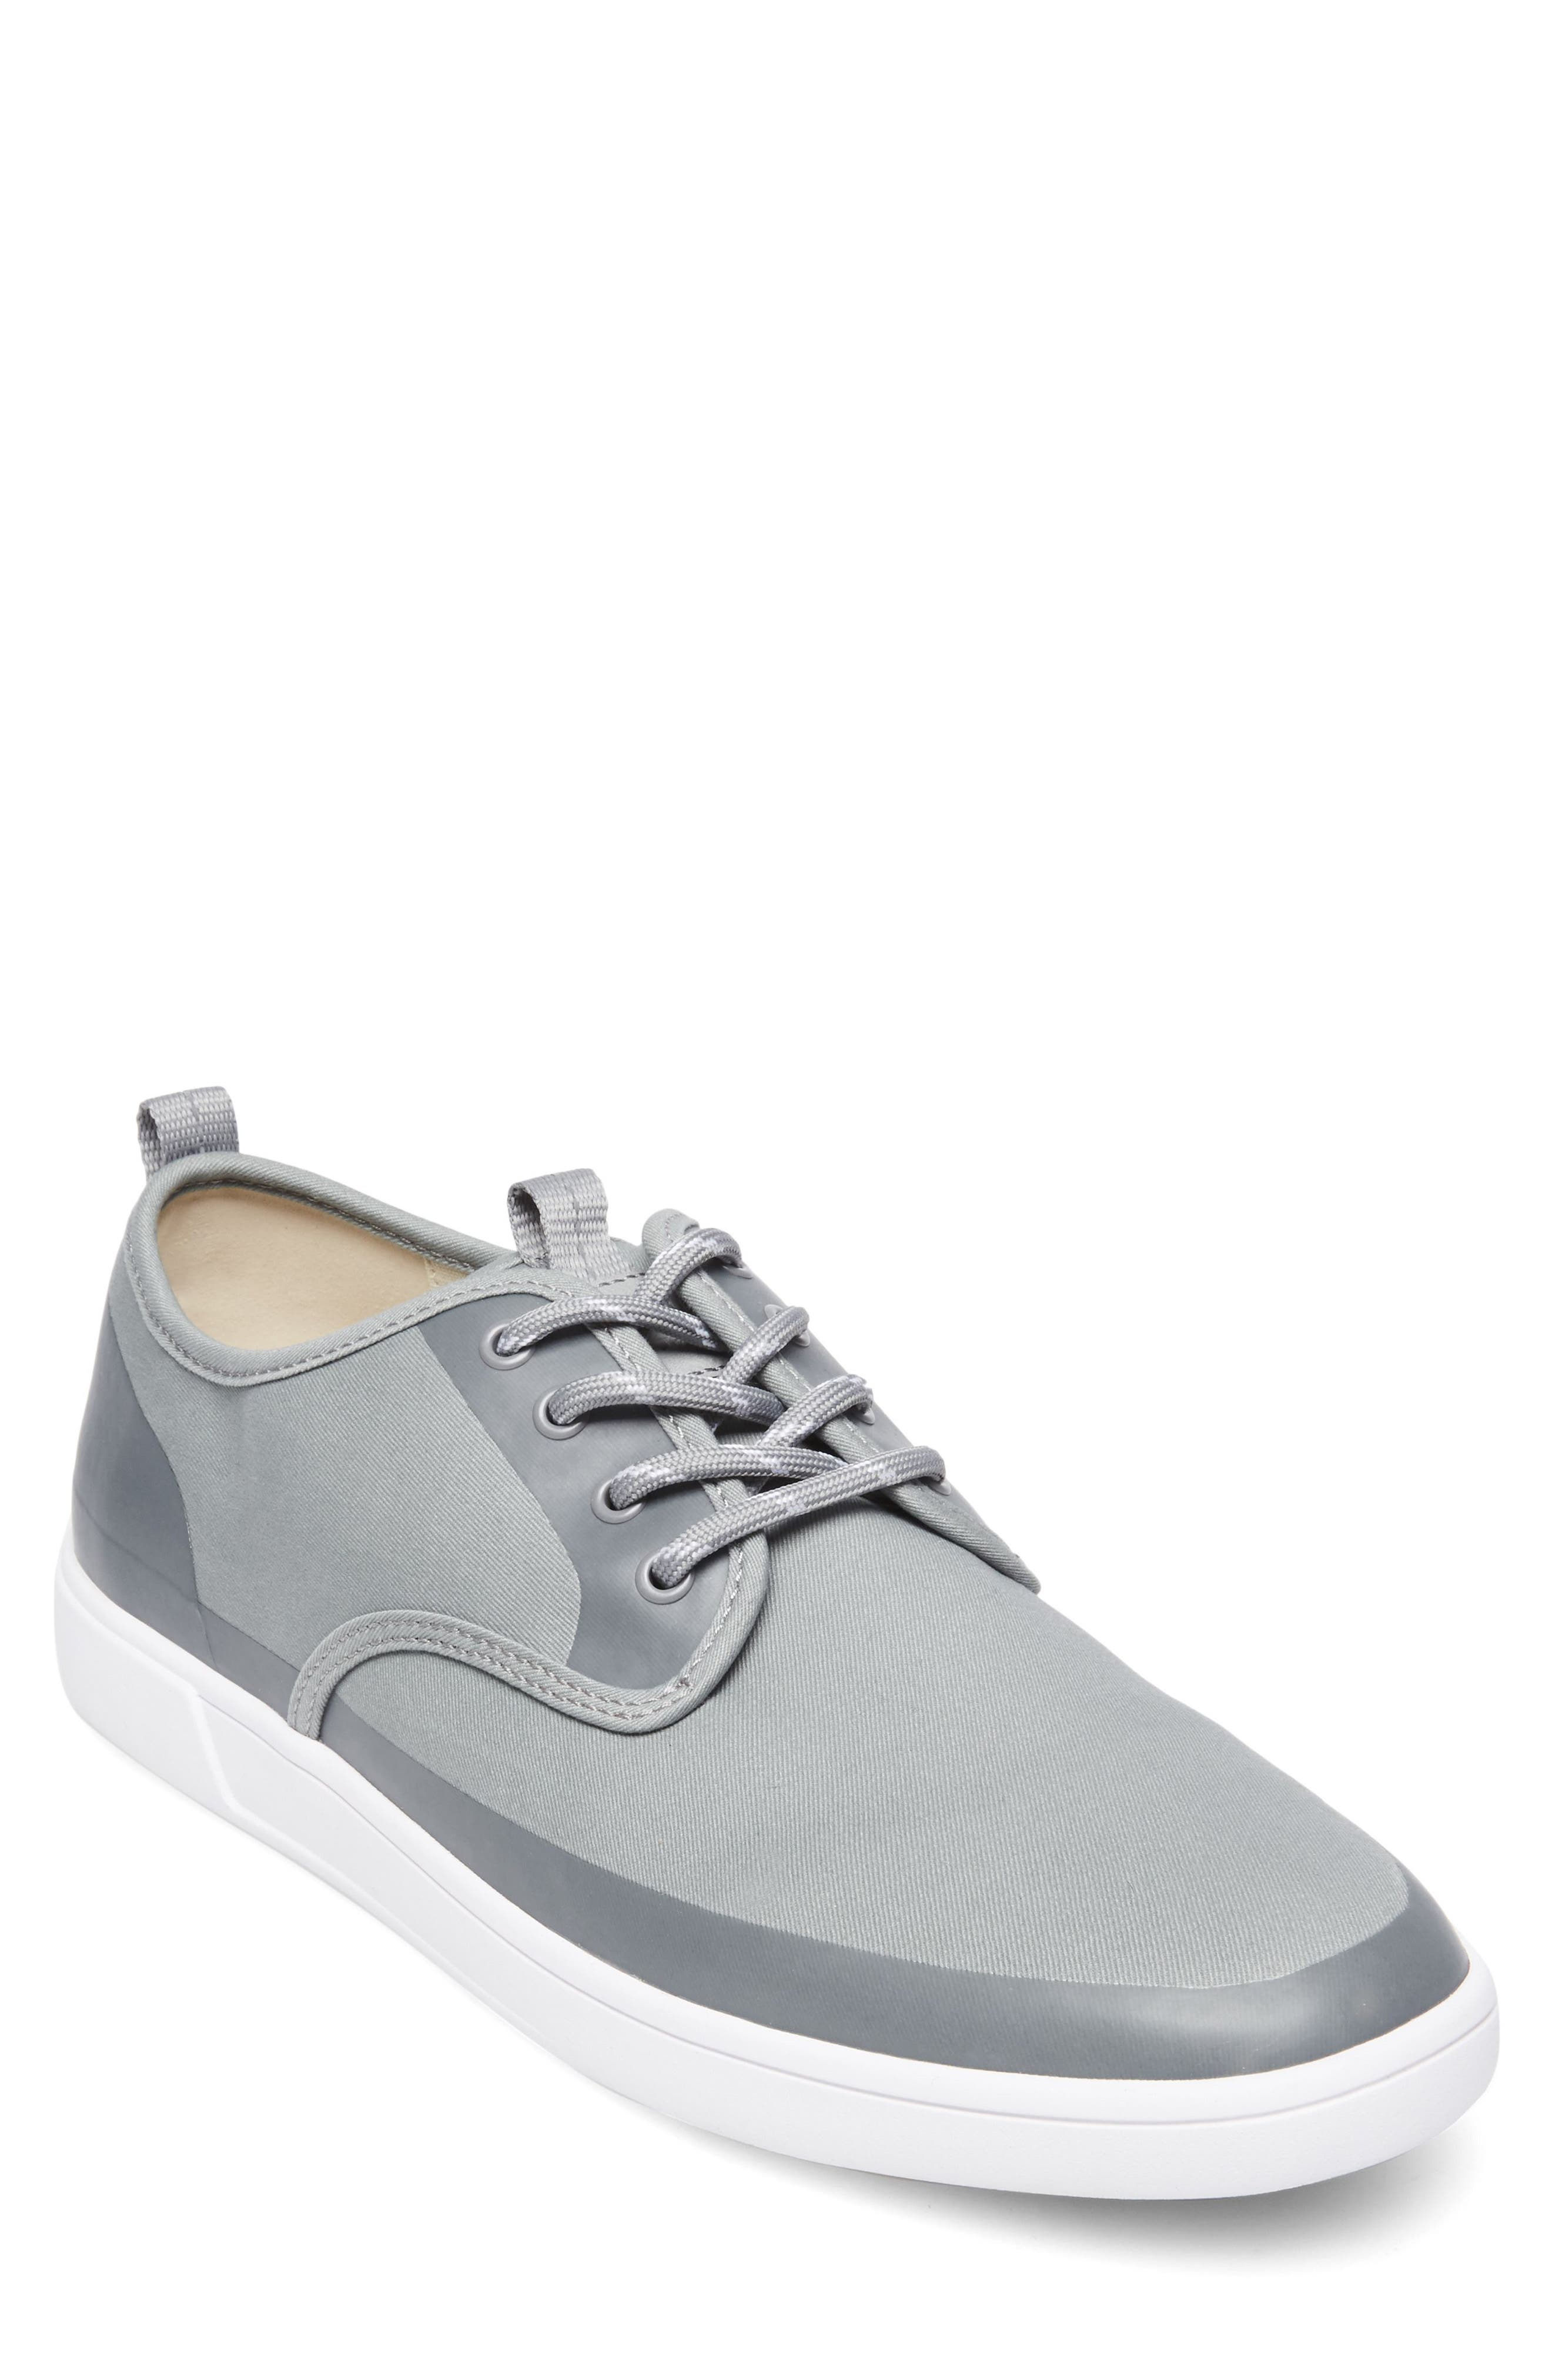 Fayette Low Top Sneaker,                             Main thumbnail 1, color,                             Grey Fabric